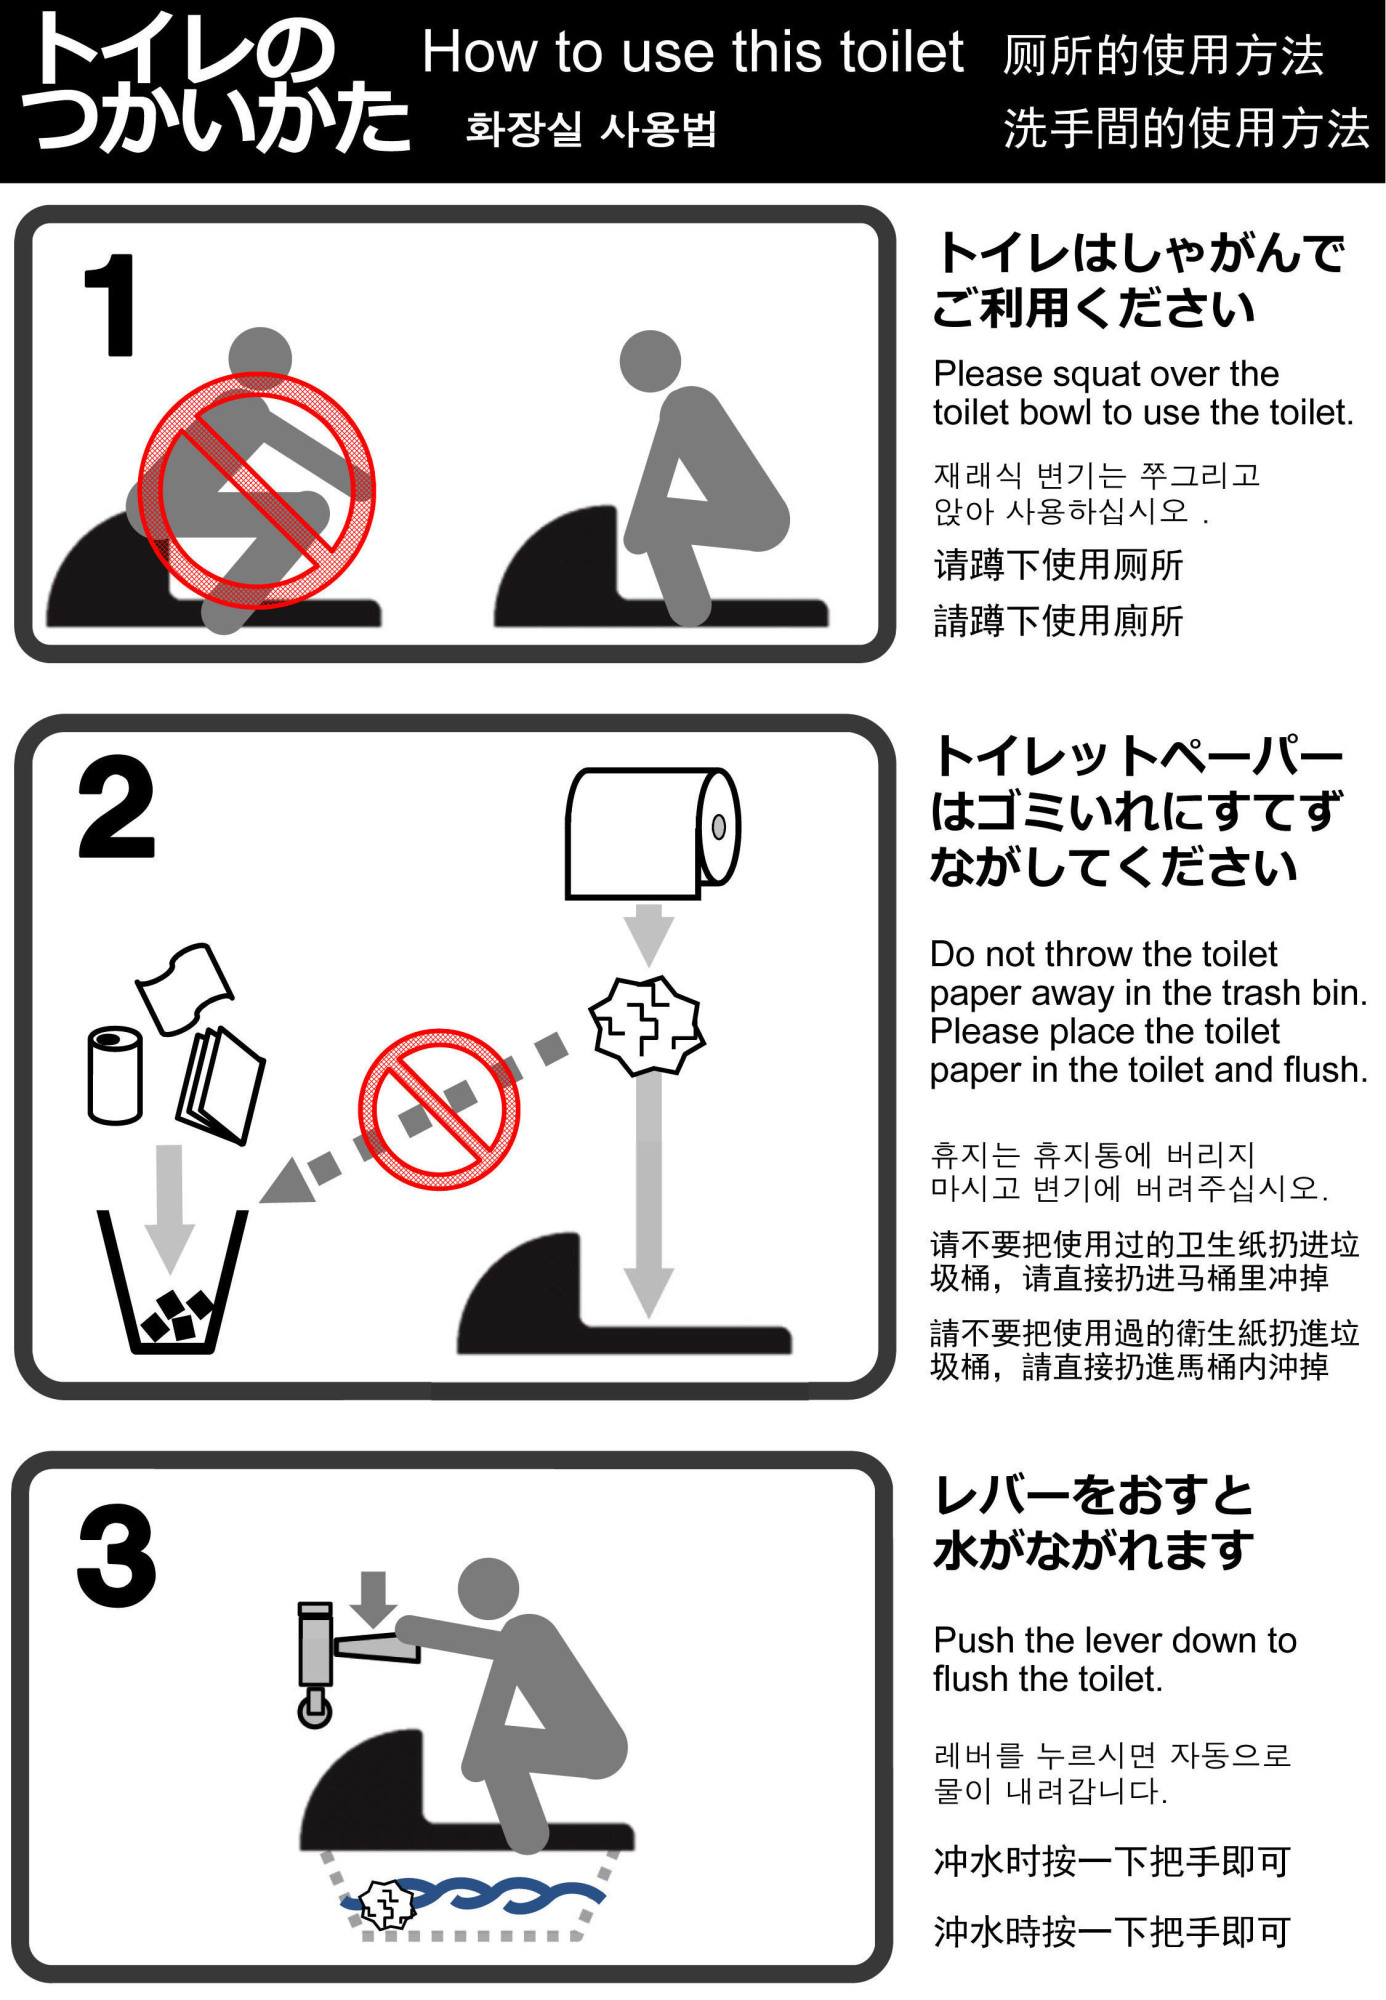 Standardization Of Toliet Instructions In Japan